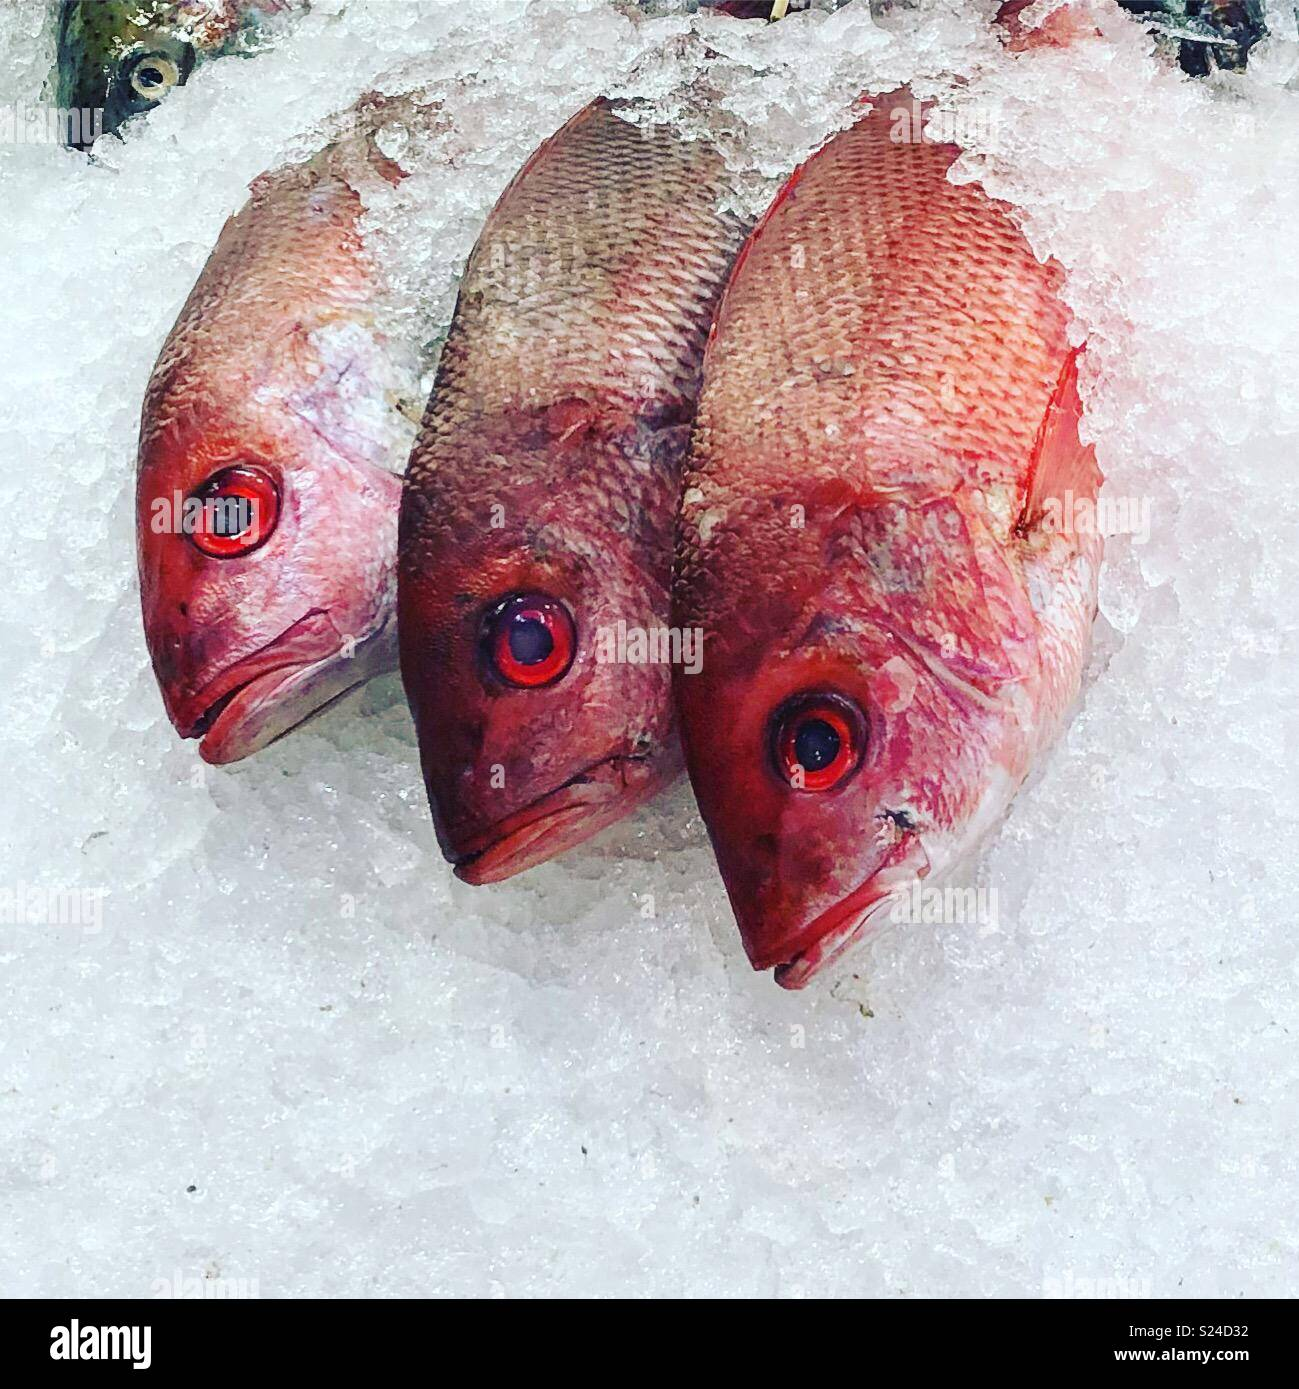 Poisson vivaneau rouge sur la glace, St Lawrence Market, Toronto Photo Stock